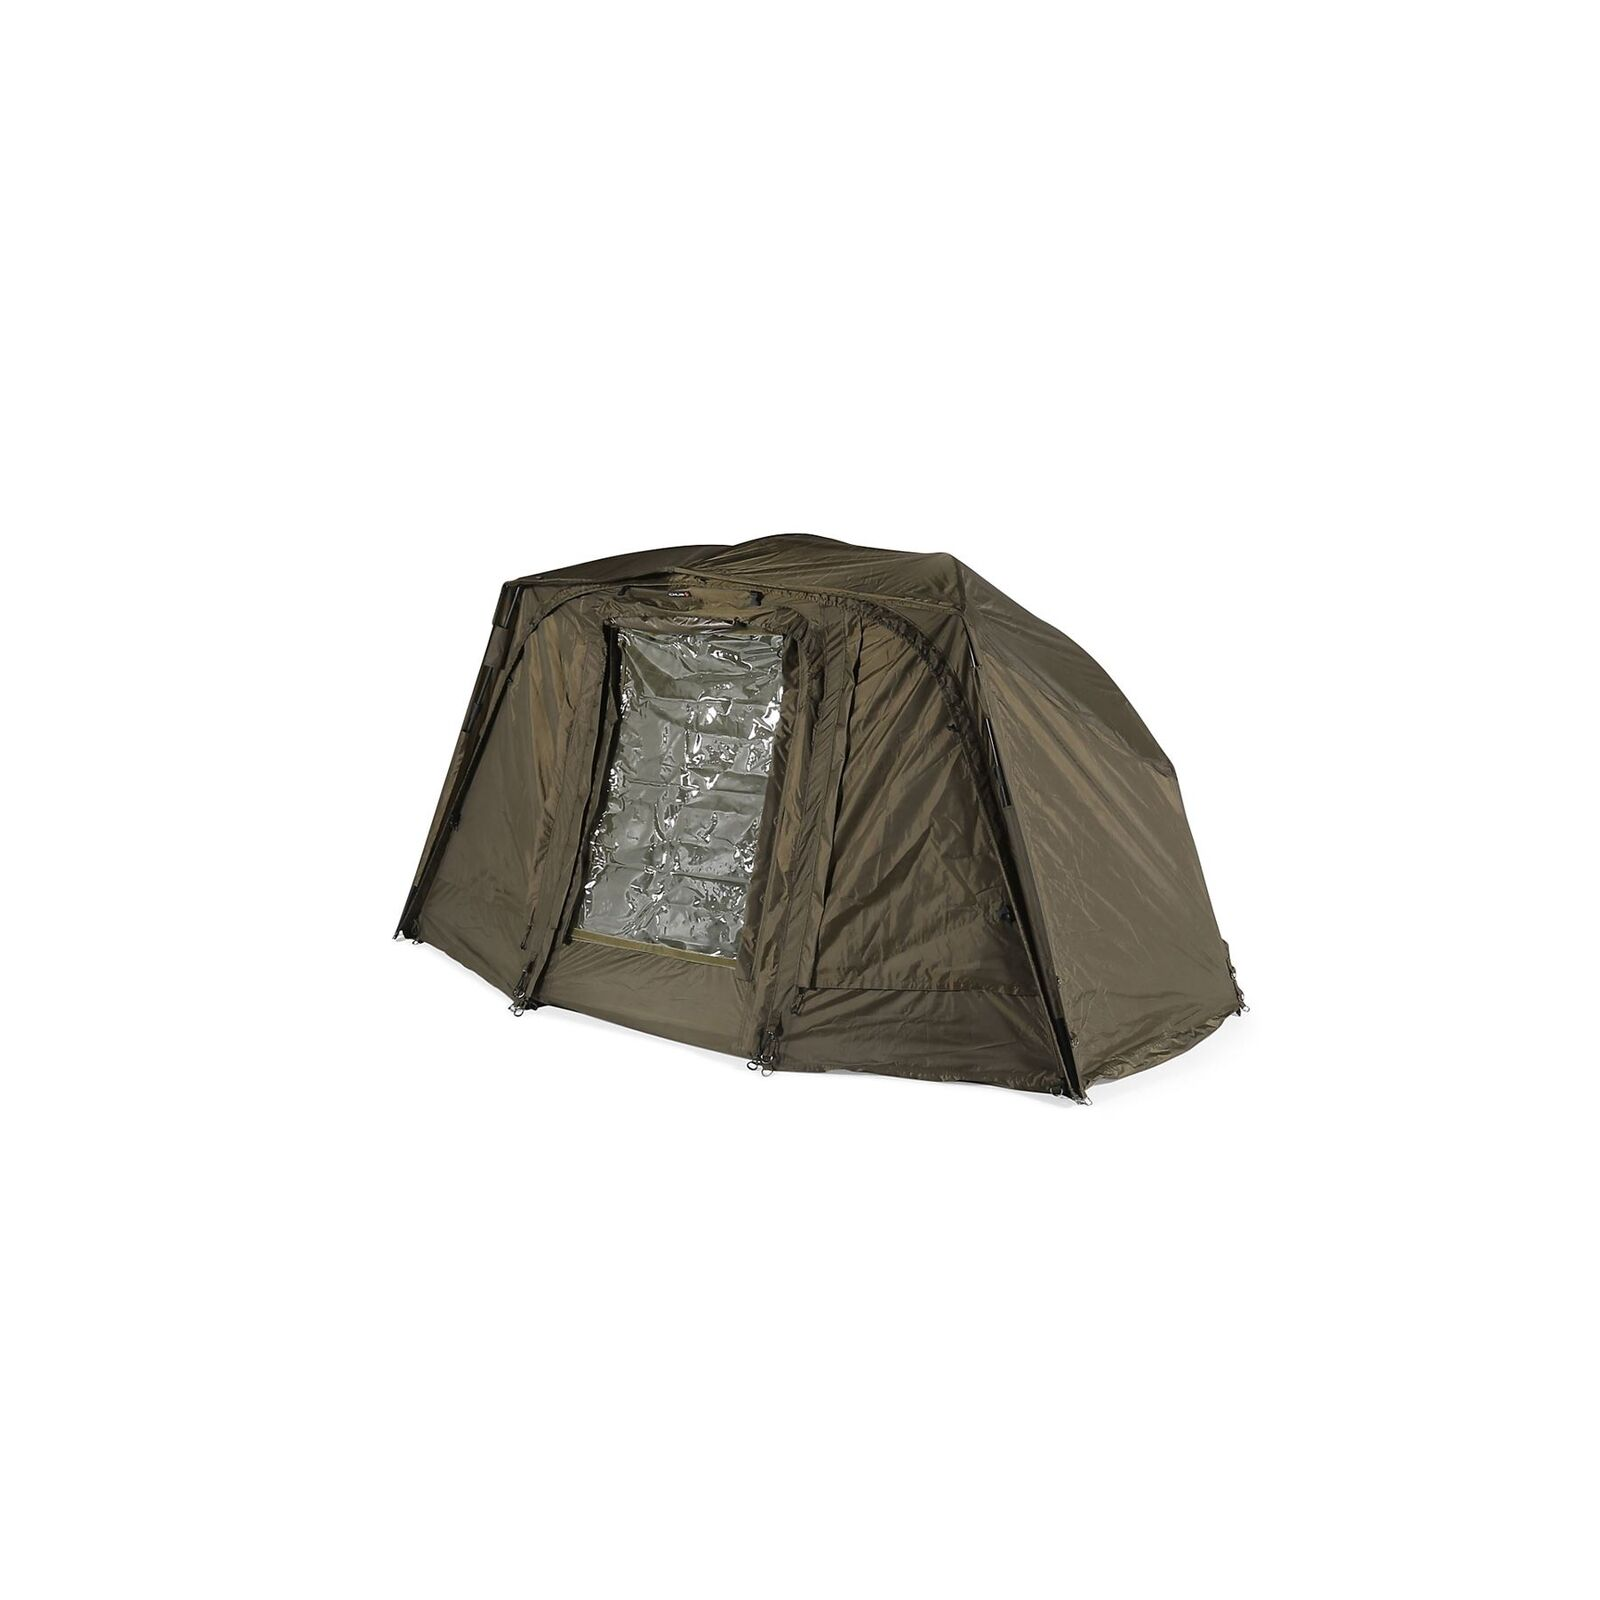 CHUB Outkast 60 Inch Brolly System   Carp Fishing Shelter